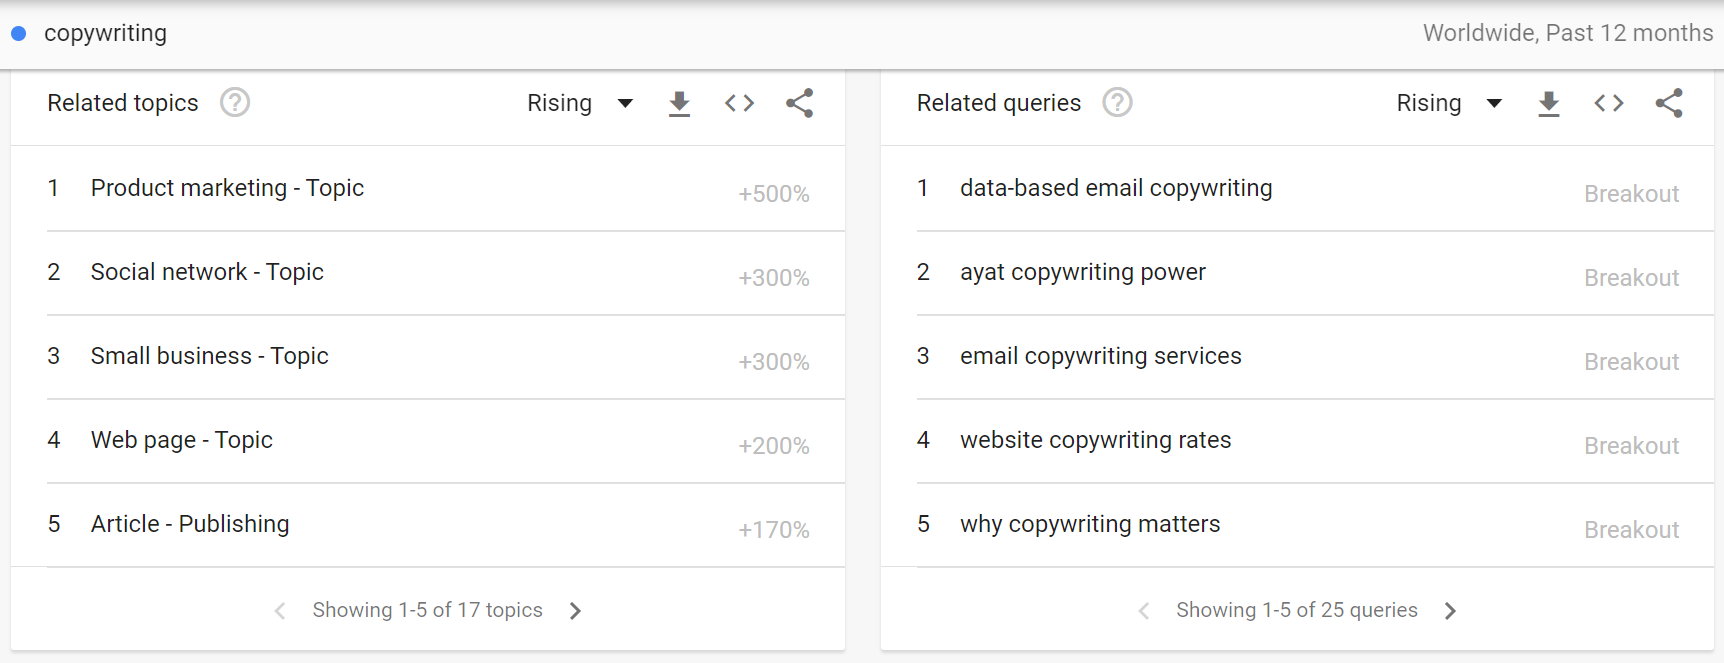 Google Trend's results of the global copywriting trend in the past 12 months